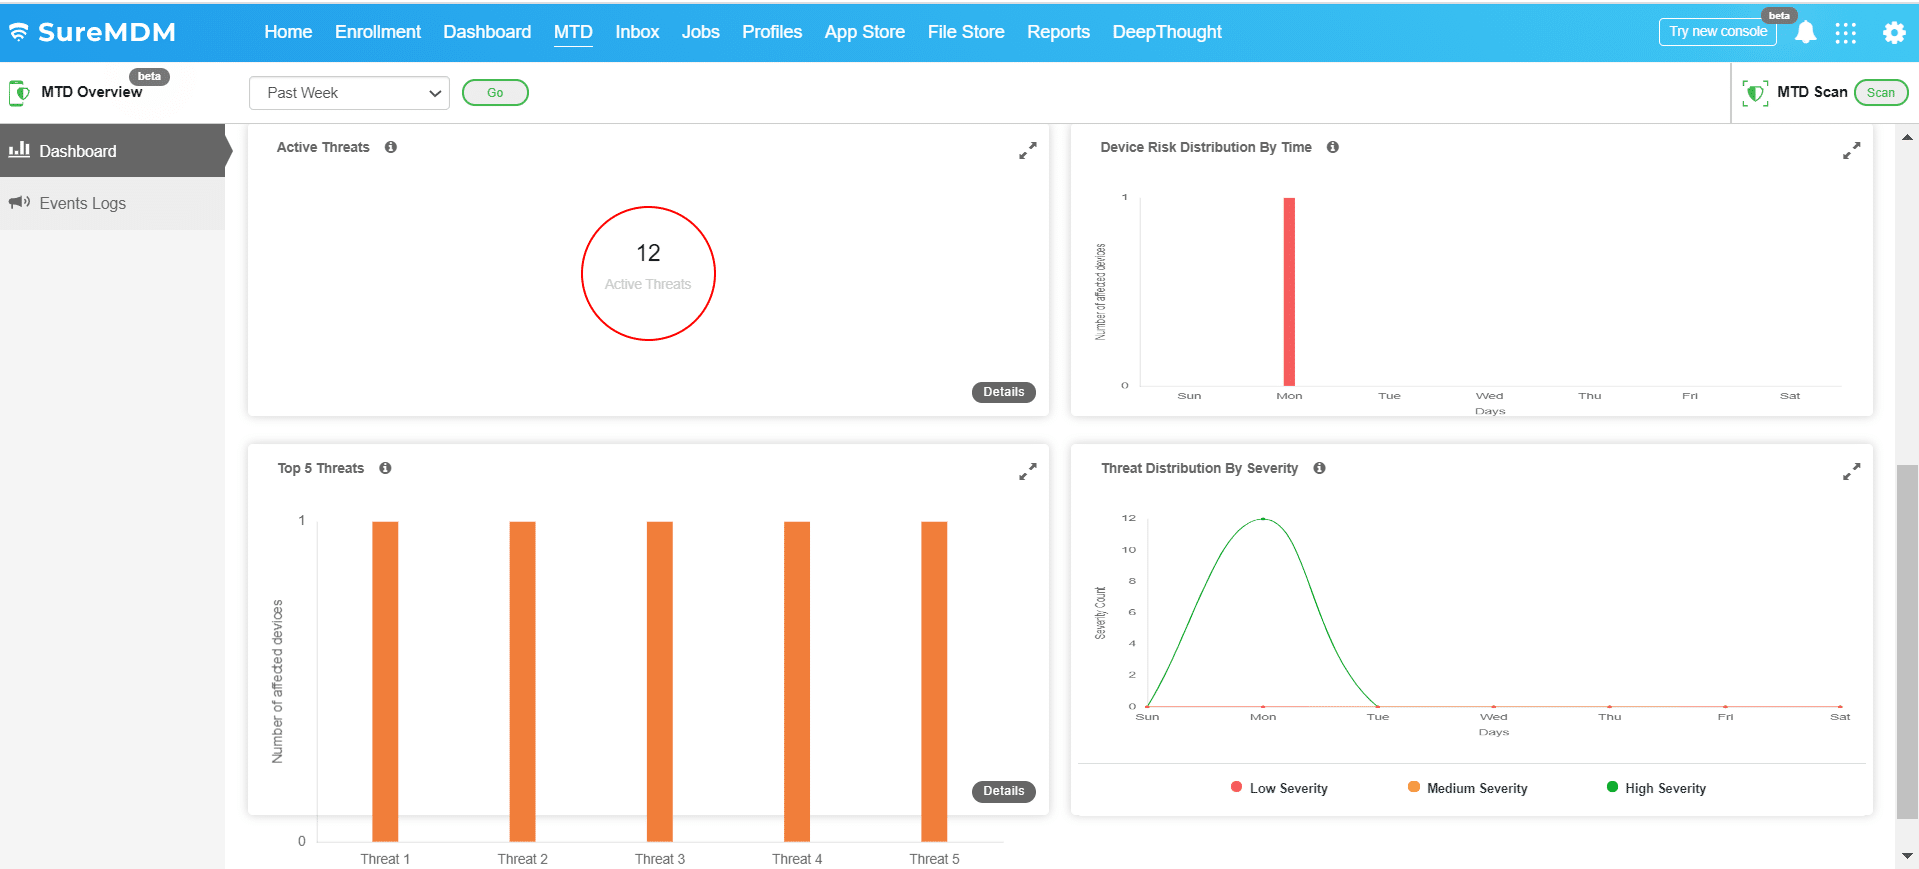 MTD Dashboard showing Active threats, Top threats, Device Risk Distribution by time, threat distribution by severity across all devices